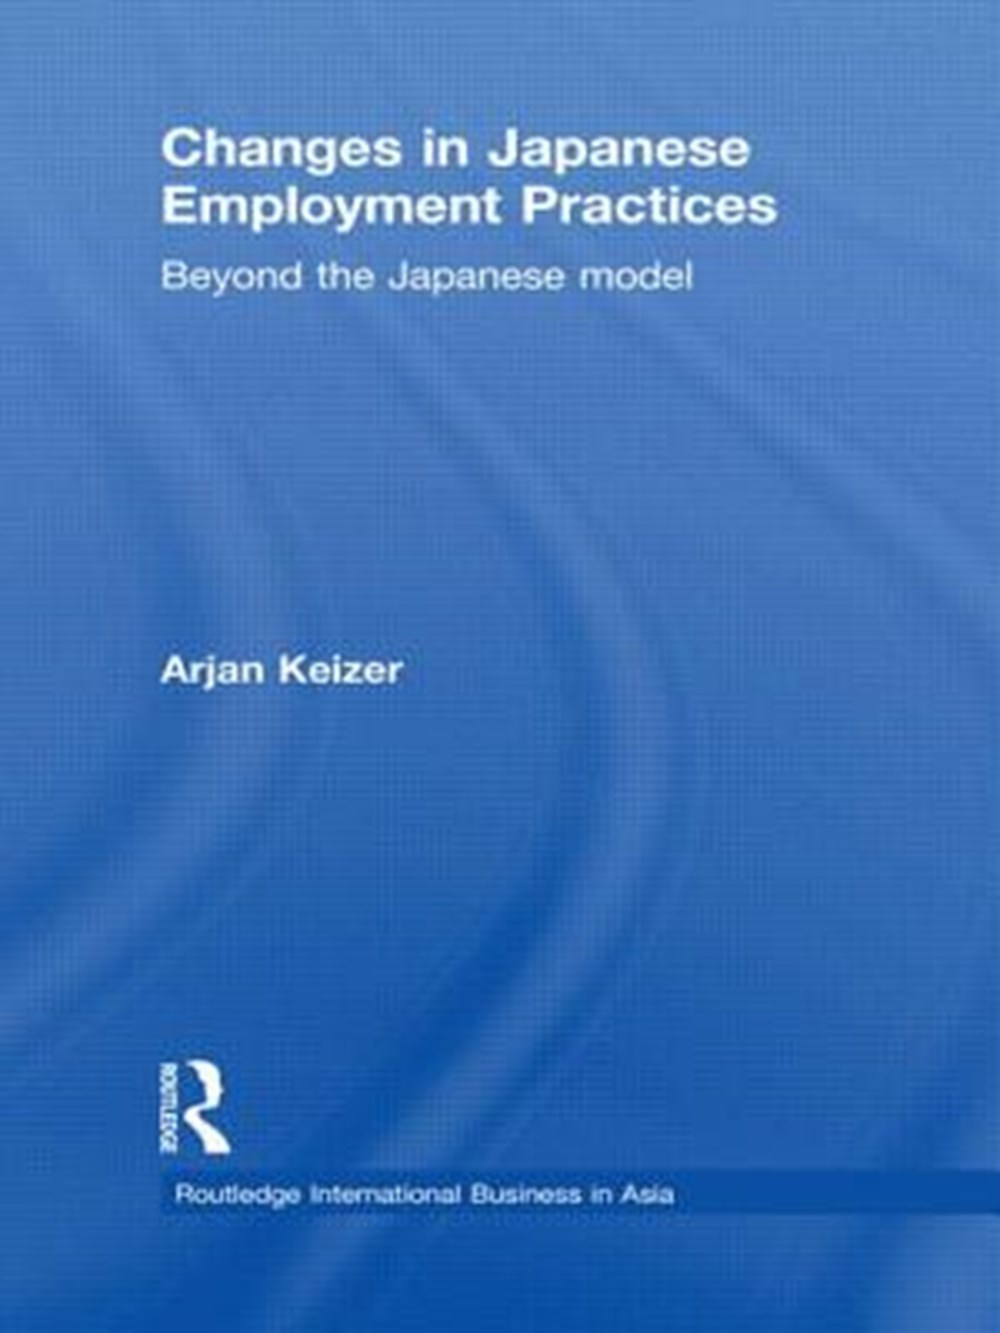 Changes in Japanese Employment Practices Beyond the Japanese Model